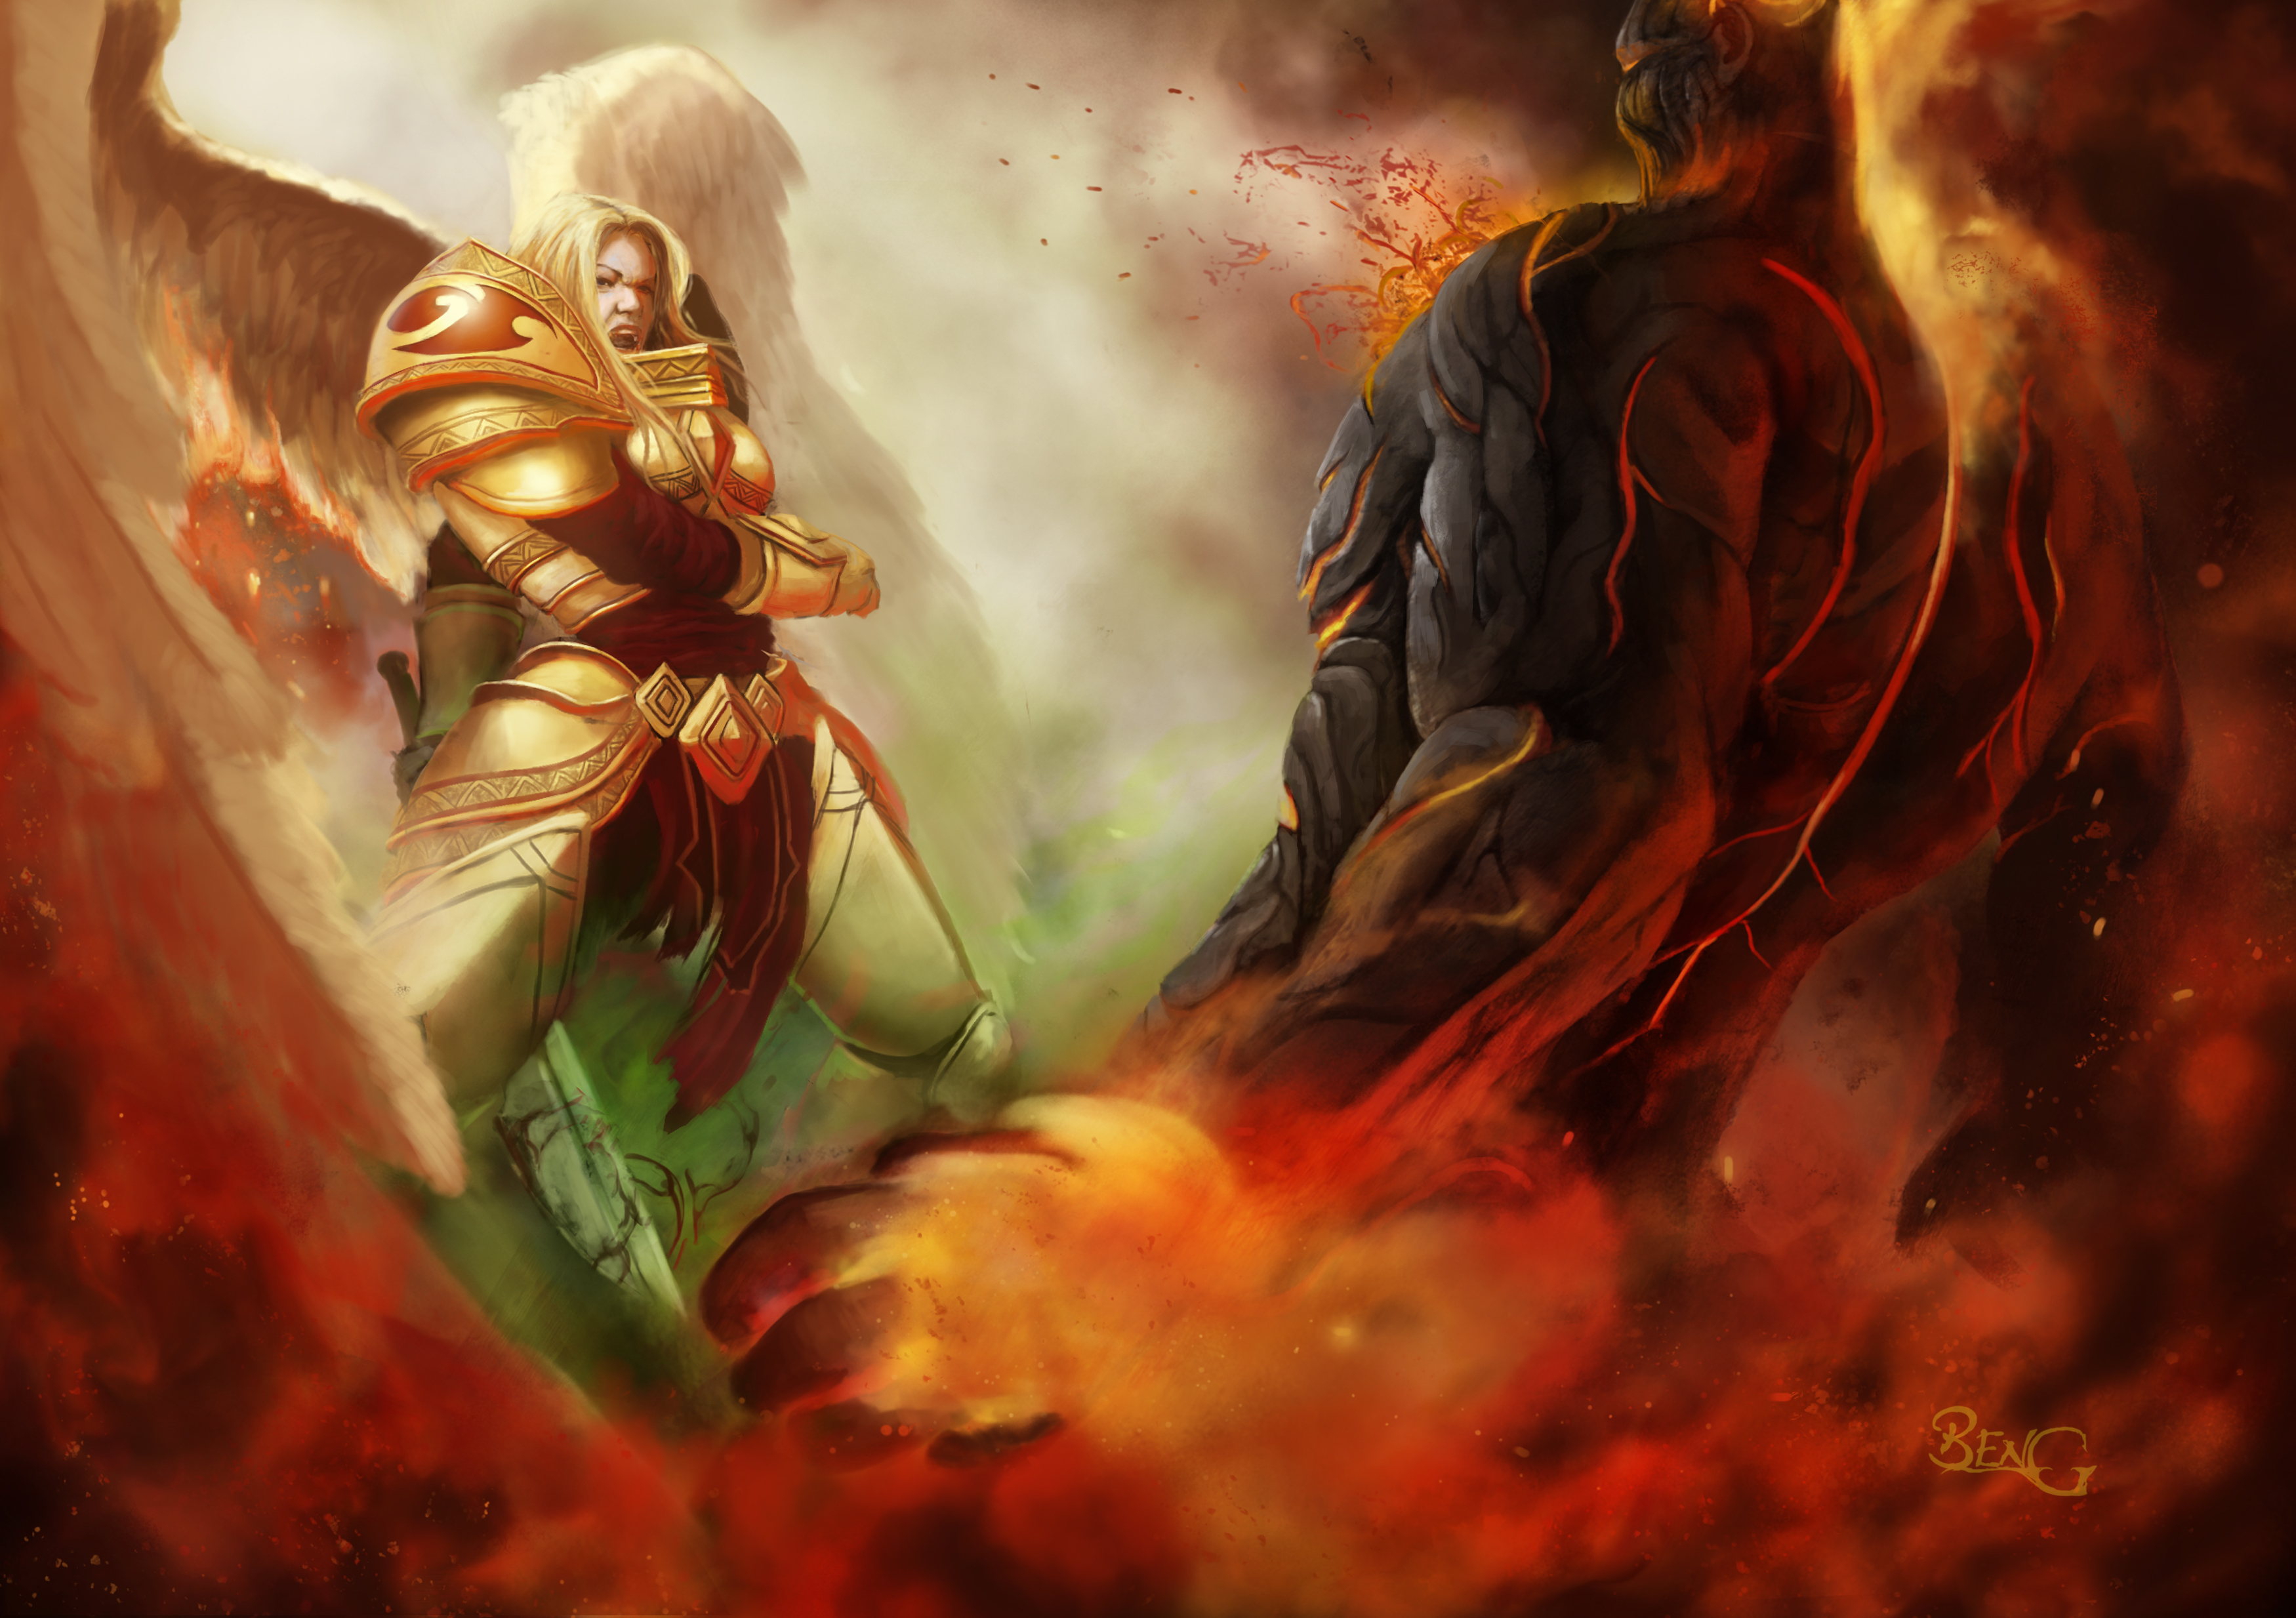 duel kayle vs brand hd wallpaper background image 3500x2467